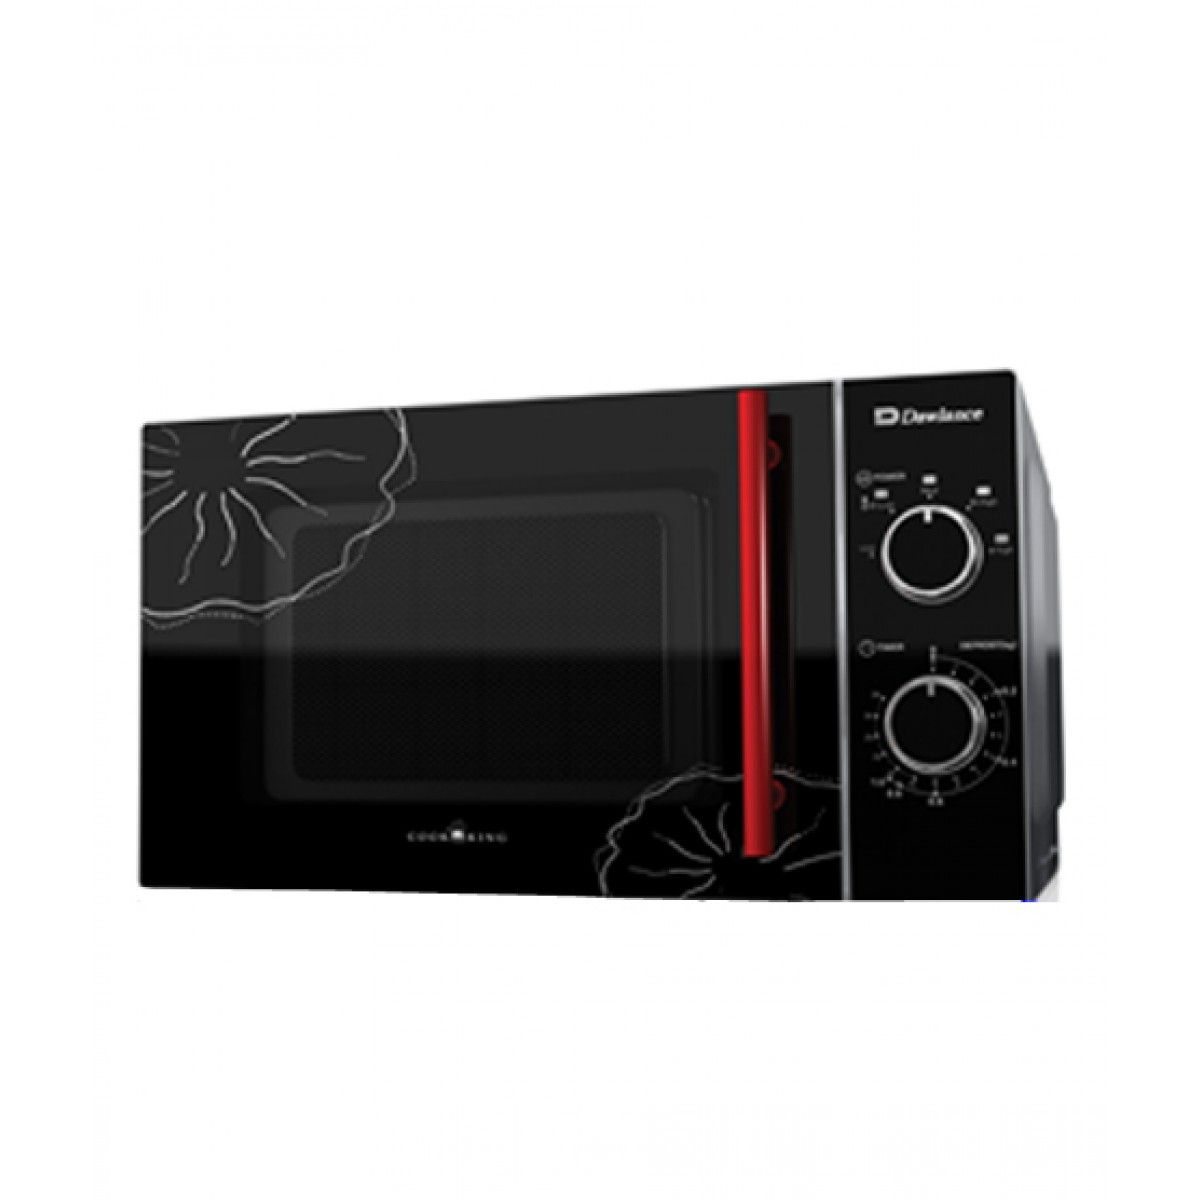 Dawlance DW-MD-7 Microwave Oven